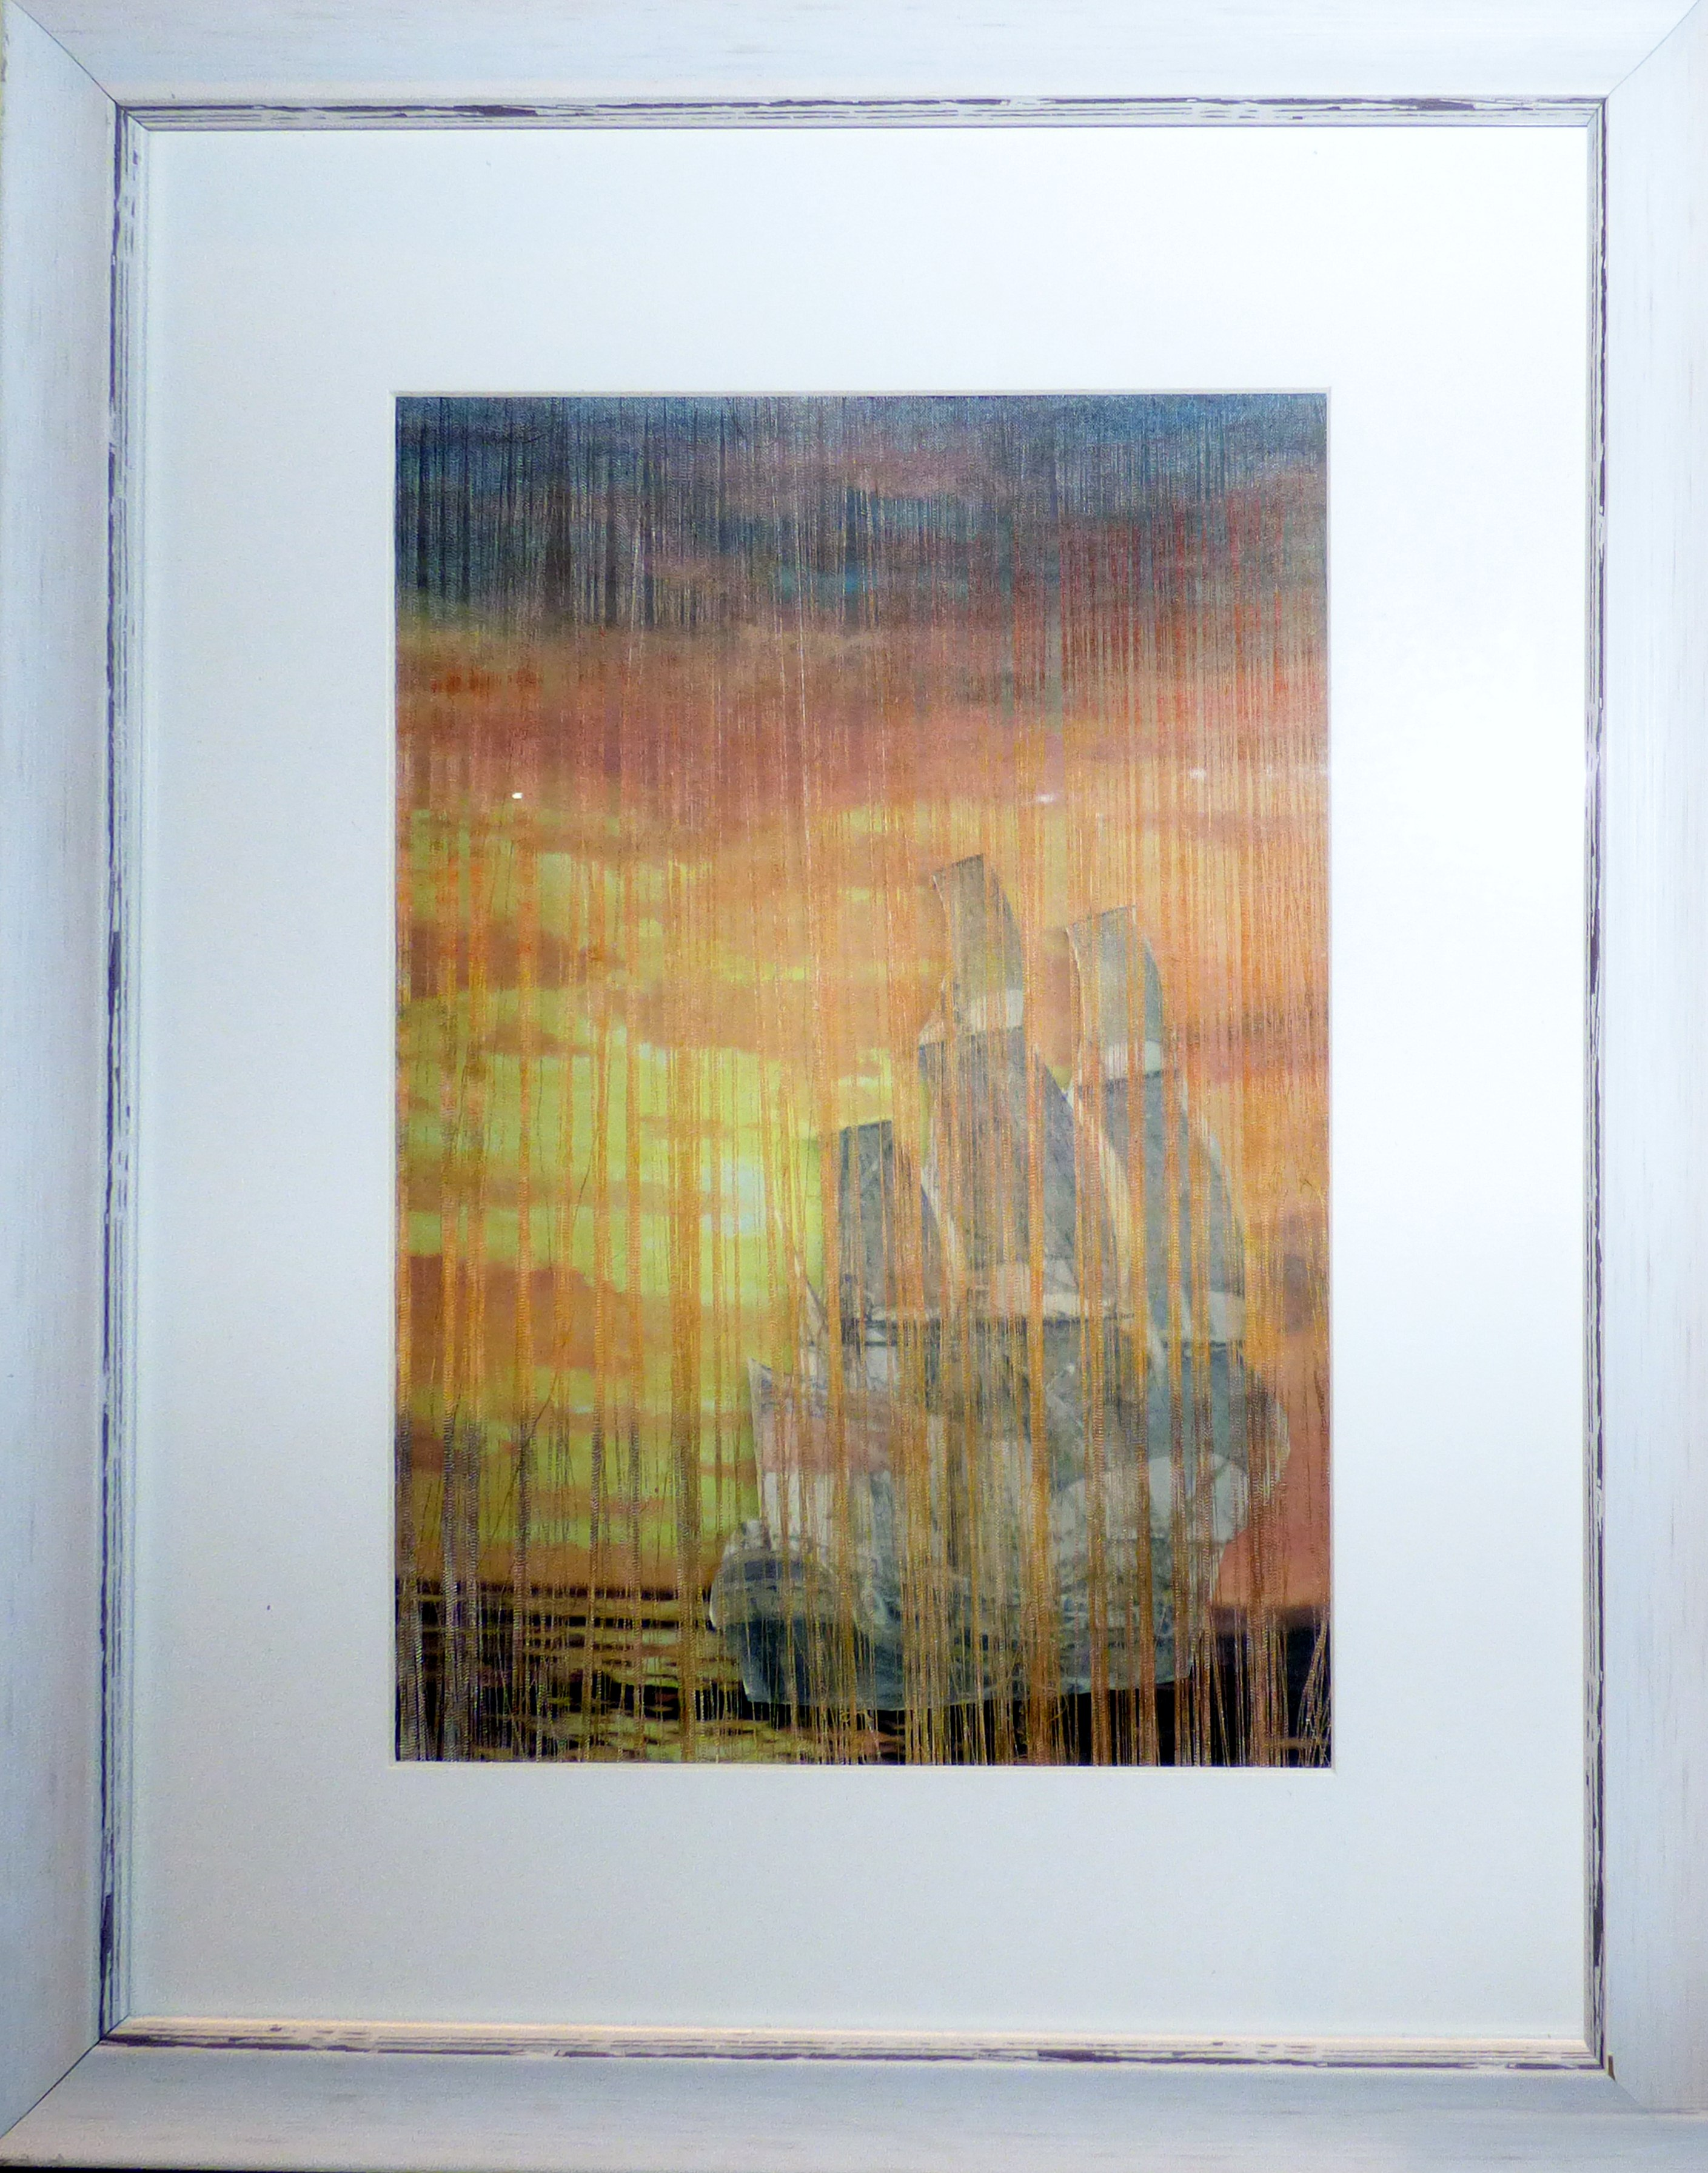 SUNSET AT SEA by Rubina Porter MBE, mixed media,   Endeavour exhibition, Liverpool Cathedral, Sept 2018